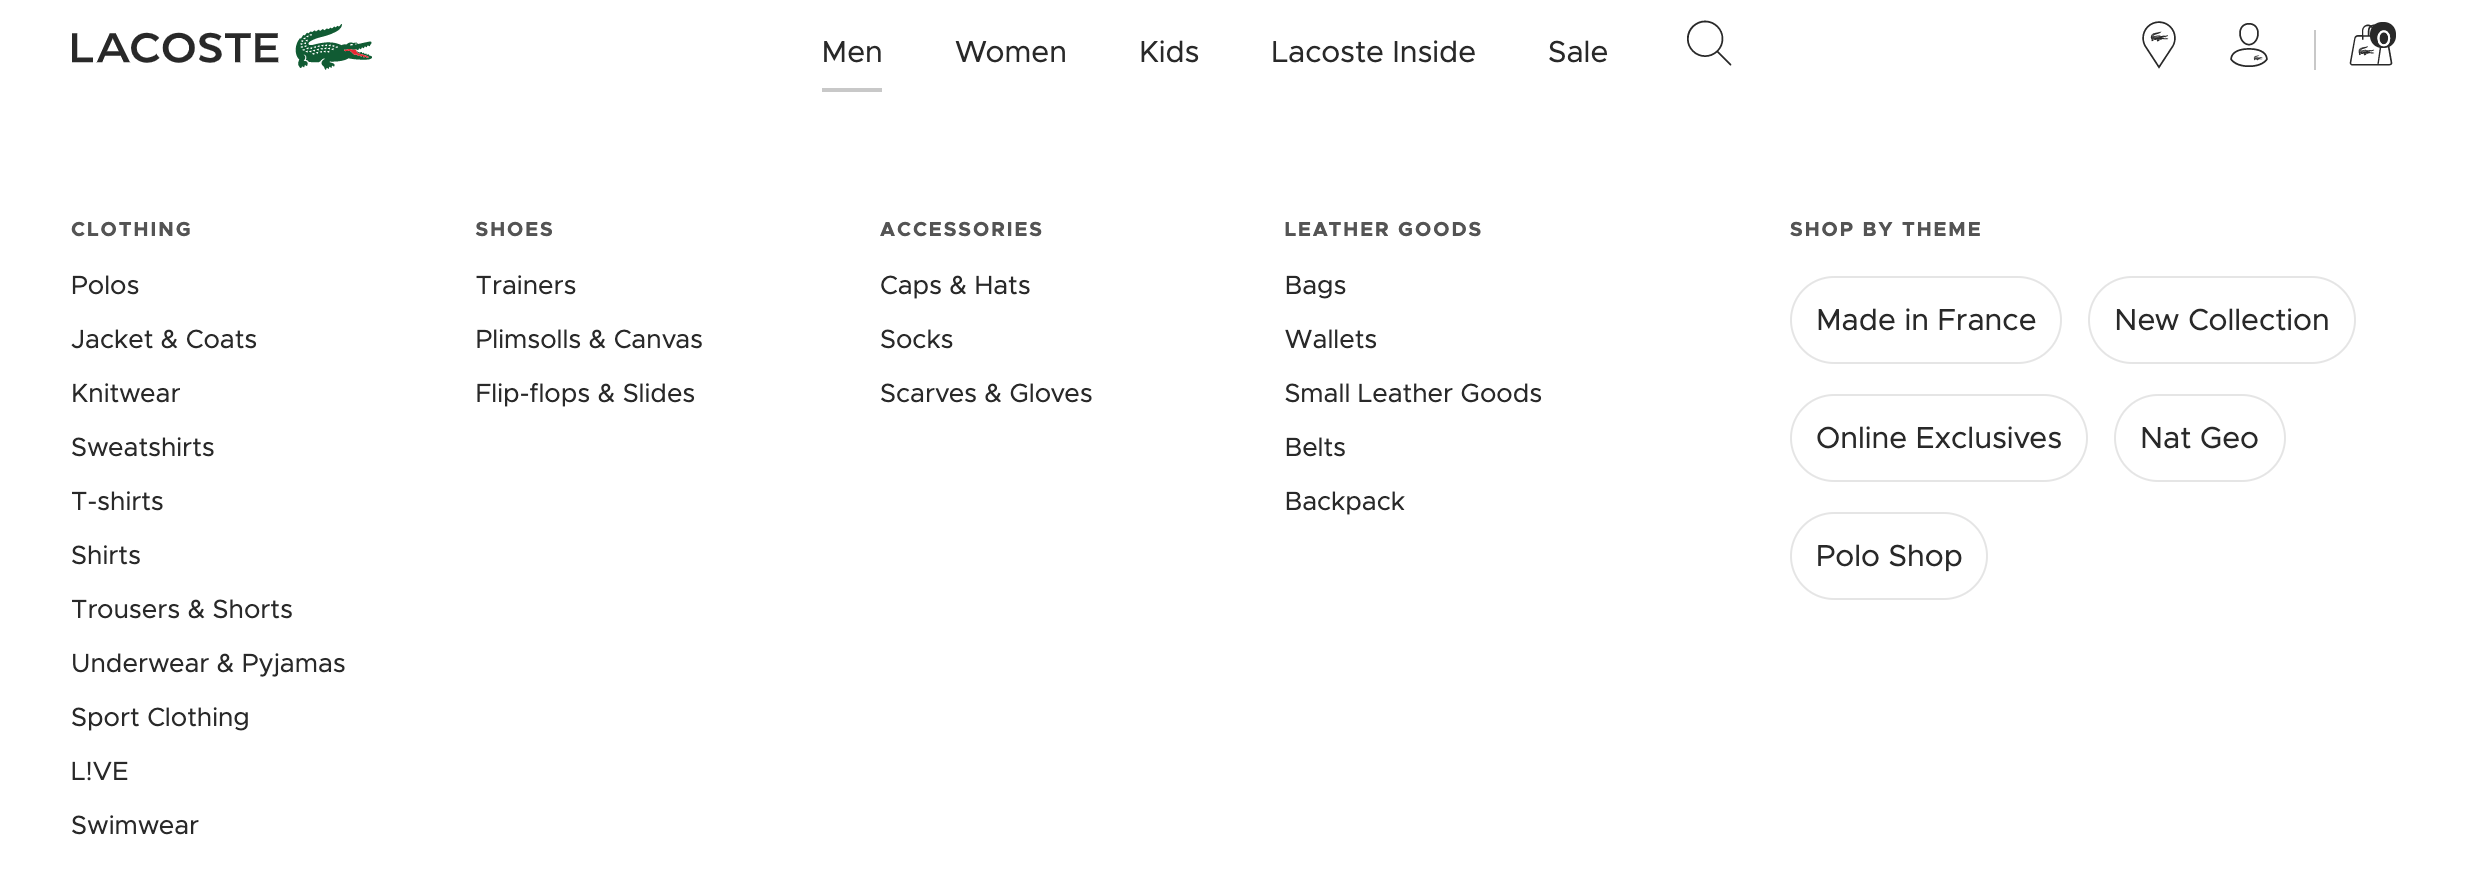 shopify filter under categories filter & site search best practices